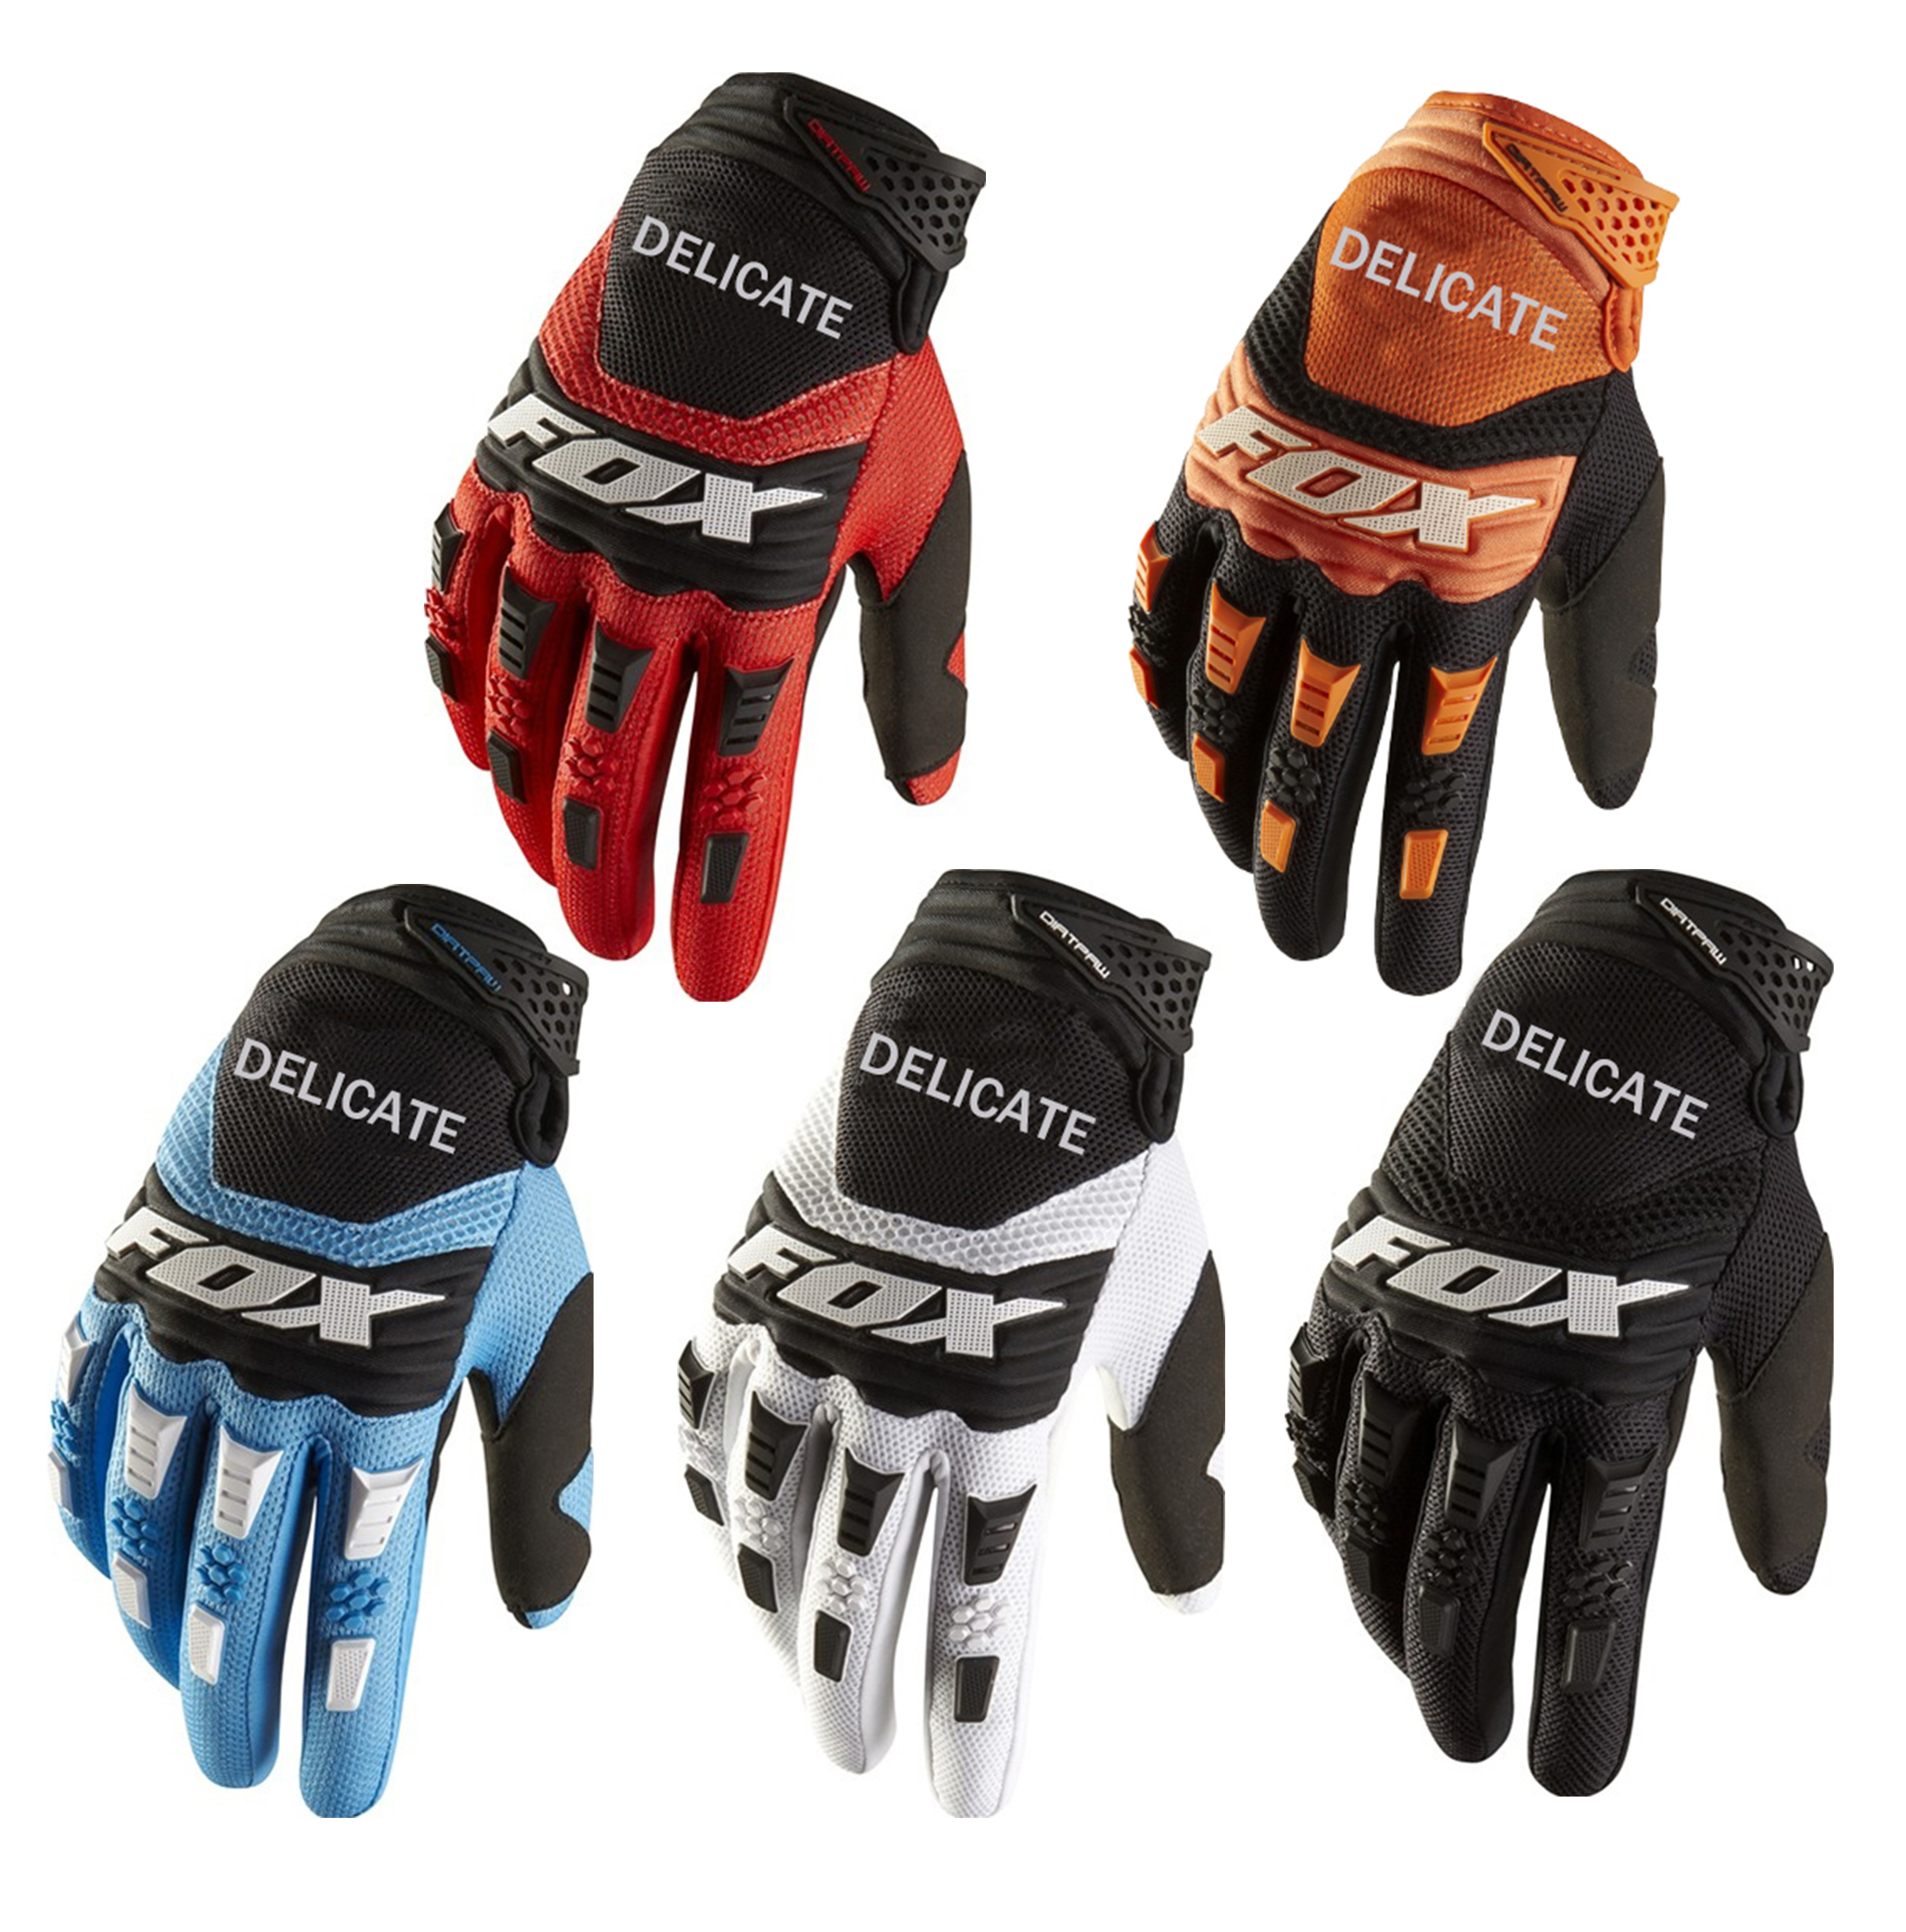 Hot Deal!Delicate Fox Motorcycle MX Pawtector Black Glove Cycling Motor Motocross Adult Gloves